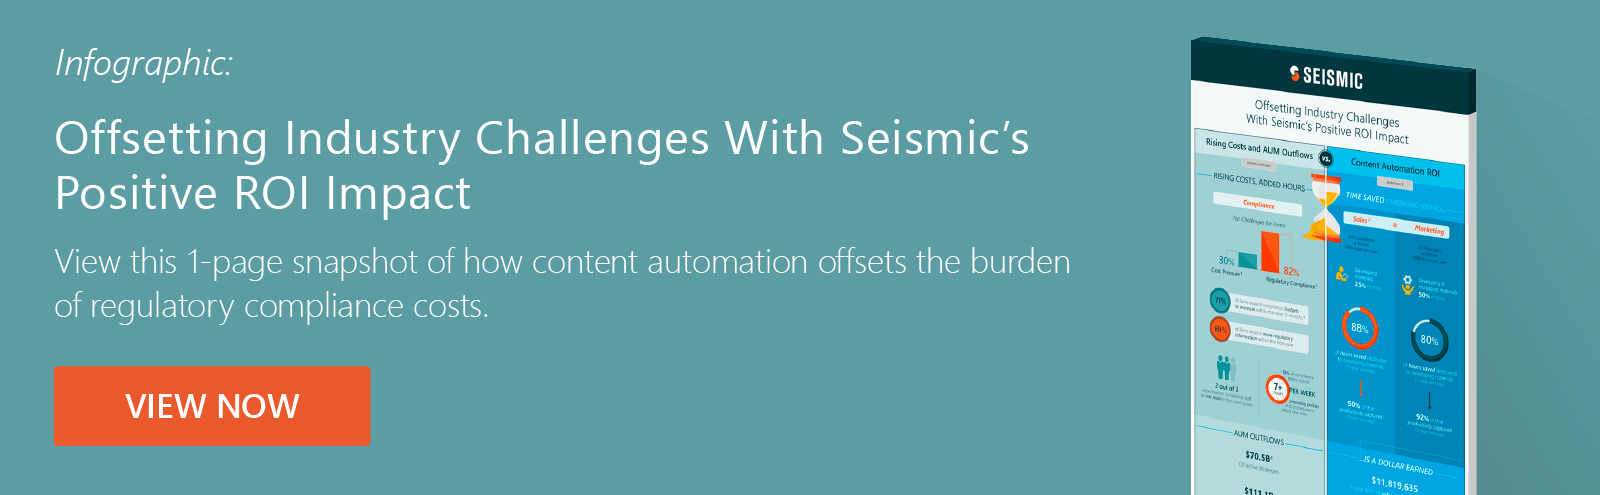 Learn more about Seismic's positive ROI impact in asset management